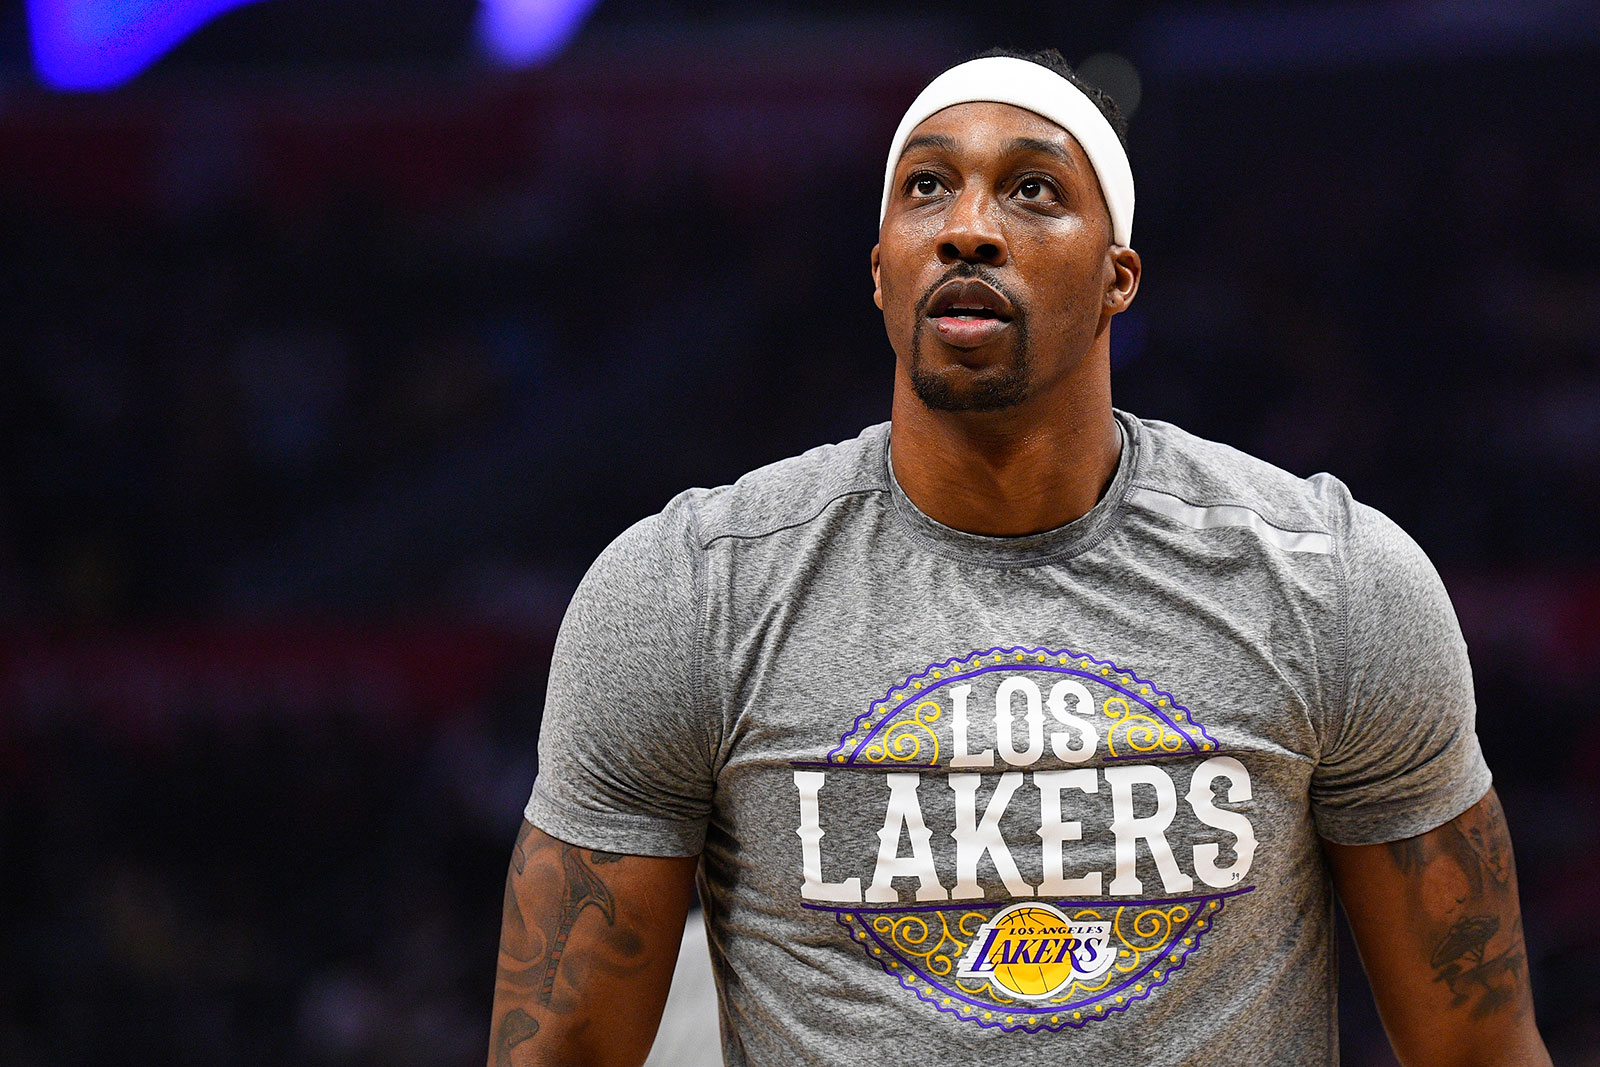 Los Angeles Lakers center Dwight Howard before a game between the Lakers and the Los Angeles Clippers on March 8.